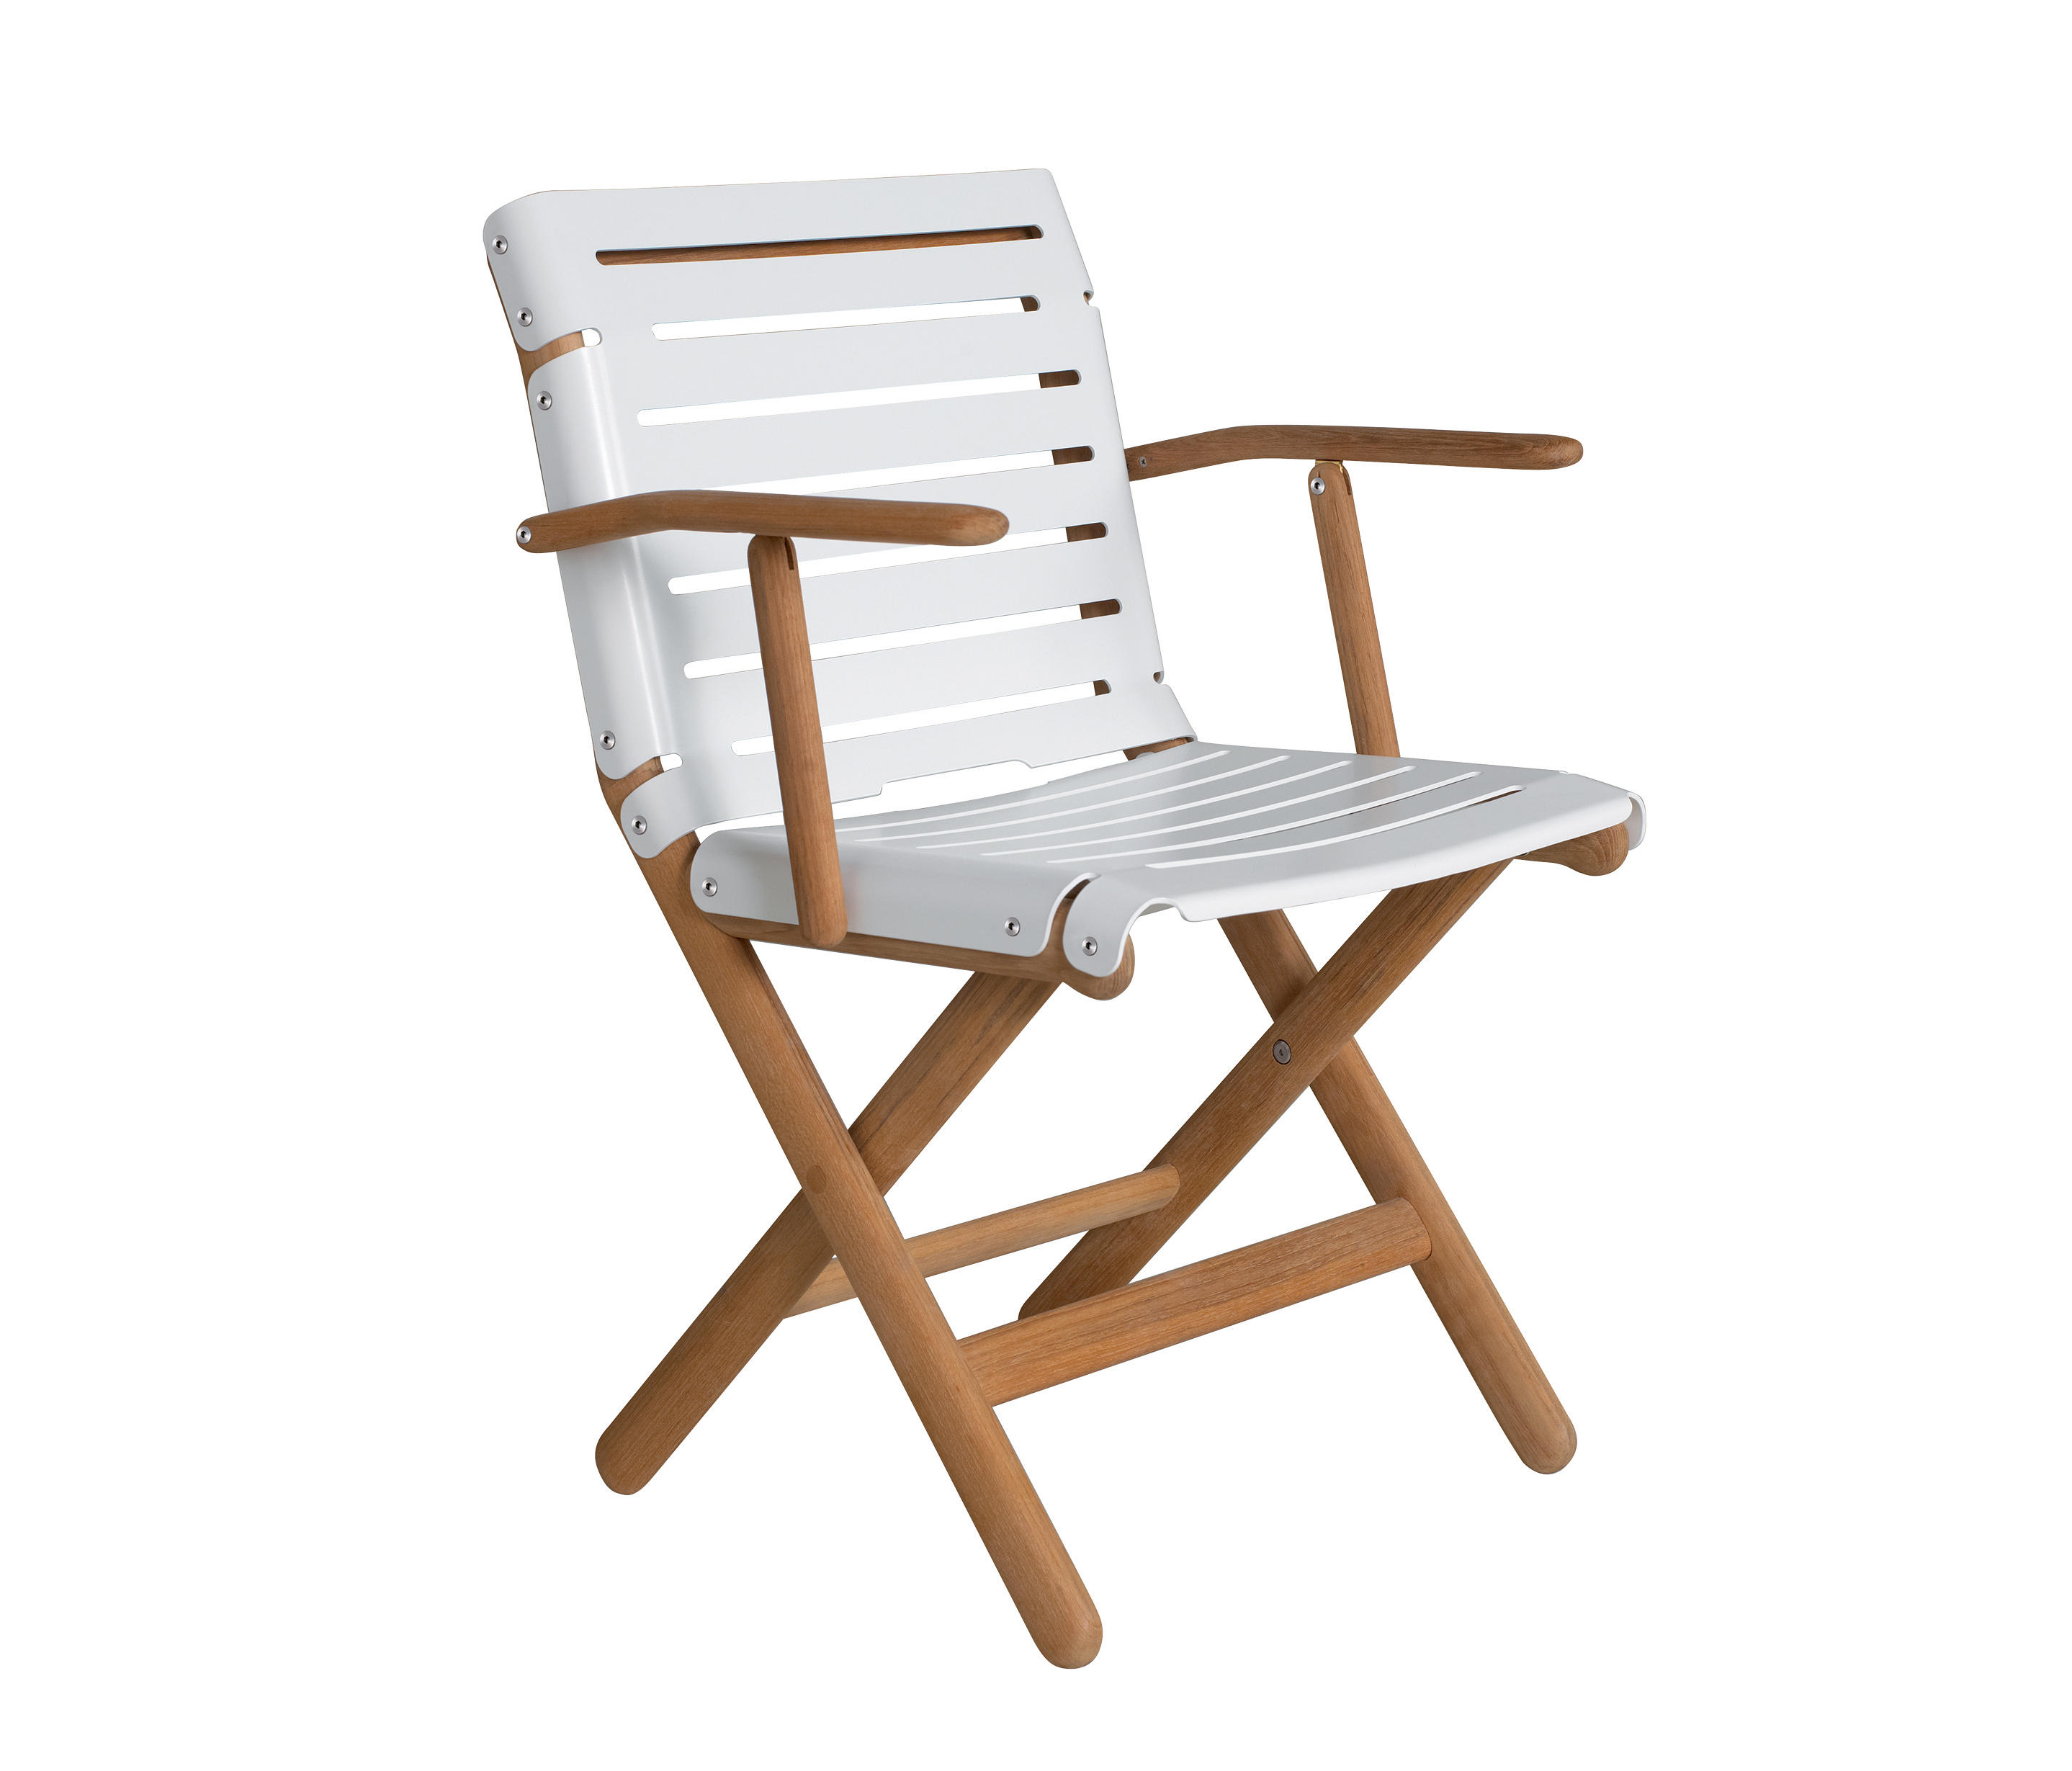 AT800 ARMCHAIR - Garden chairs from Maiori Design | Architonic